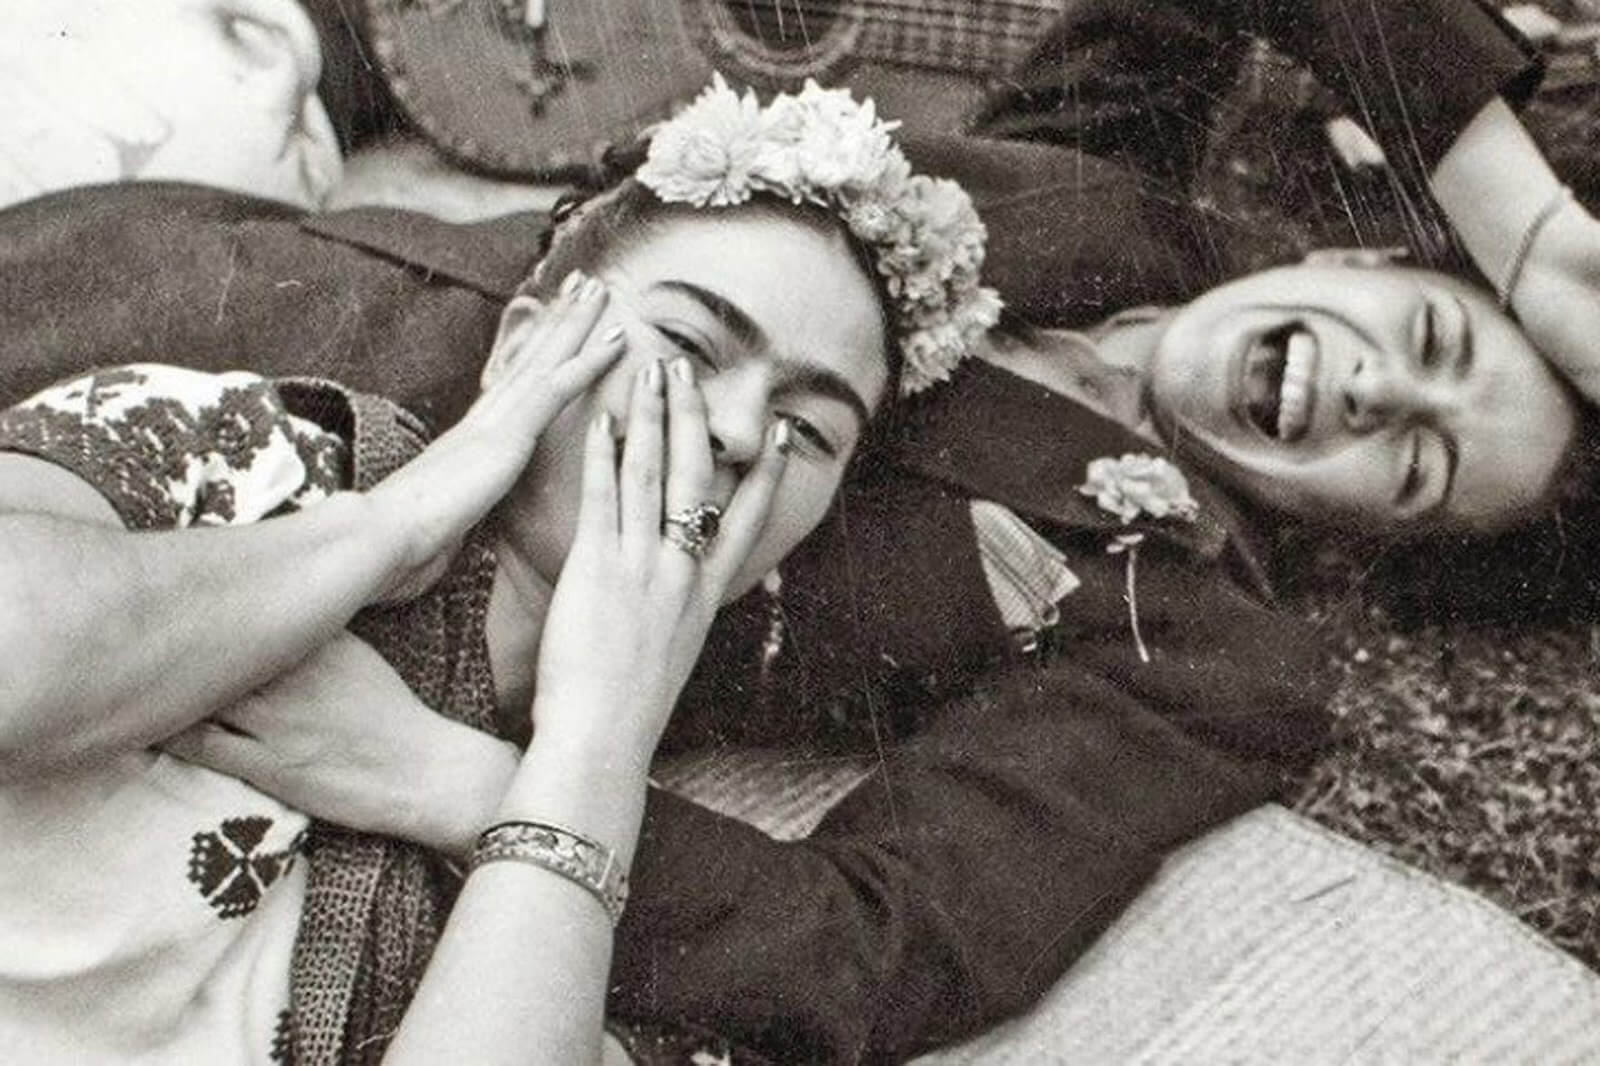 Facts about Frida Kahlo